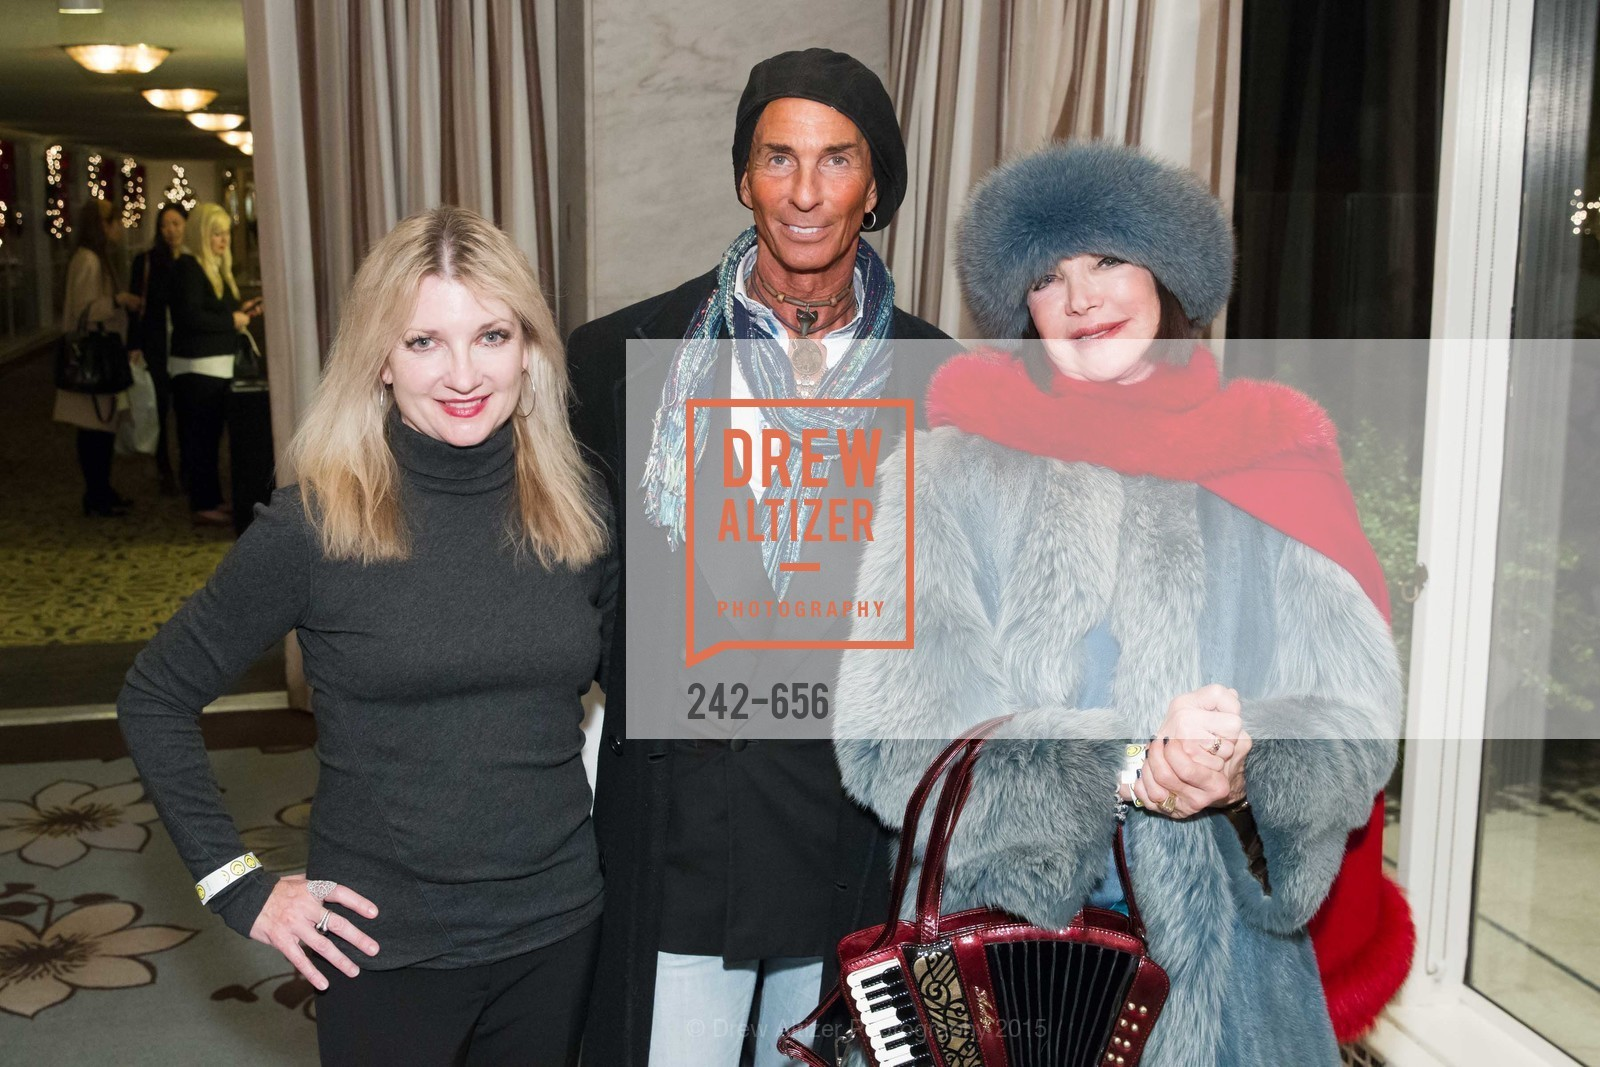 Linda Ring, Richard Habib, Sheila Ash, Joyful Holiday Toy Drive and Rumiko Birthday Bash, Fairmont, Pavilion Room, December 16th, 2015,Drew Altizer, Drew Altizer Photography, full-service agency, private events, San Francisco photographer, photographer california